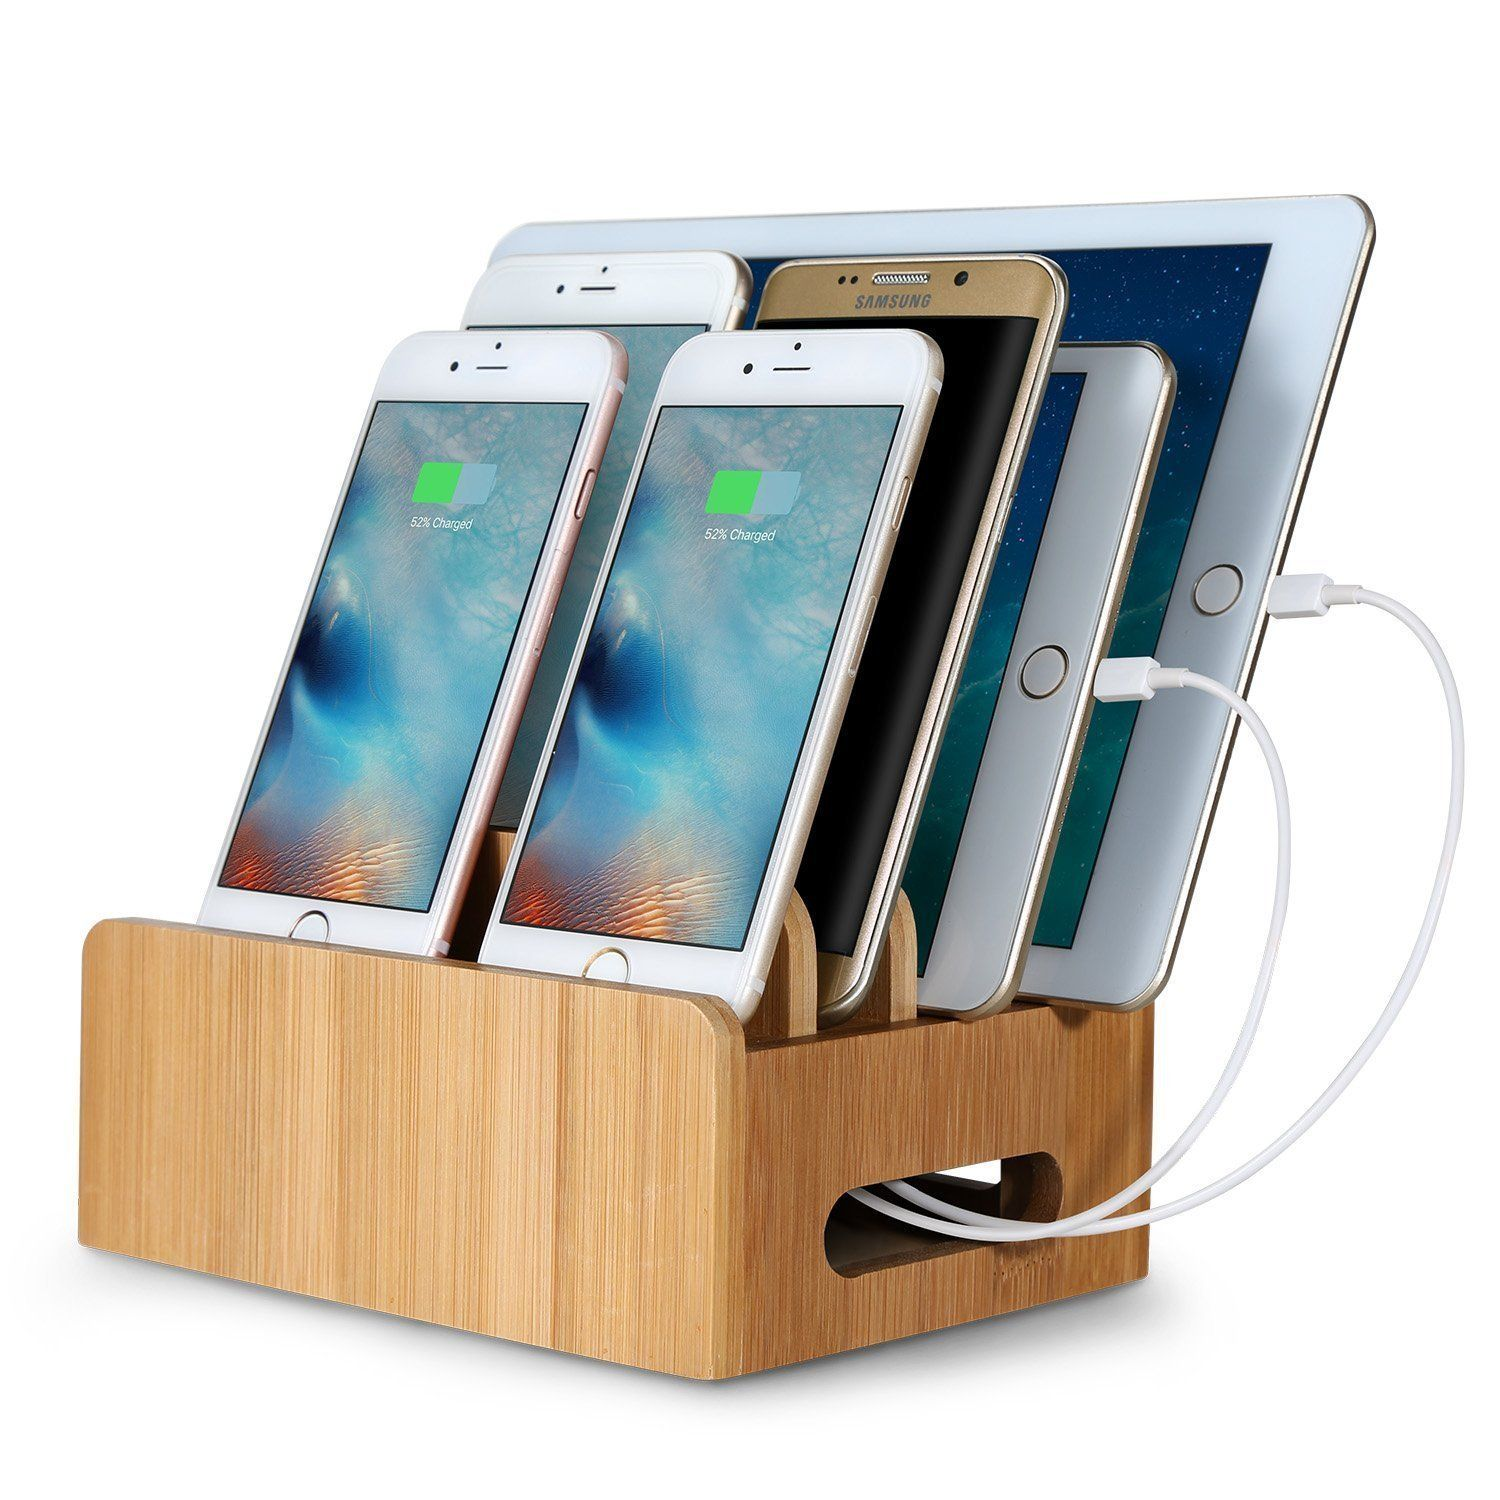 Outtek Bamboo Charging Station Stand Multi Device Cords Organizer Dock Compatible Most